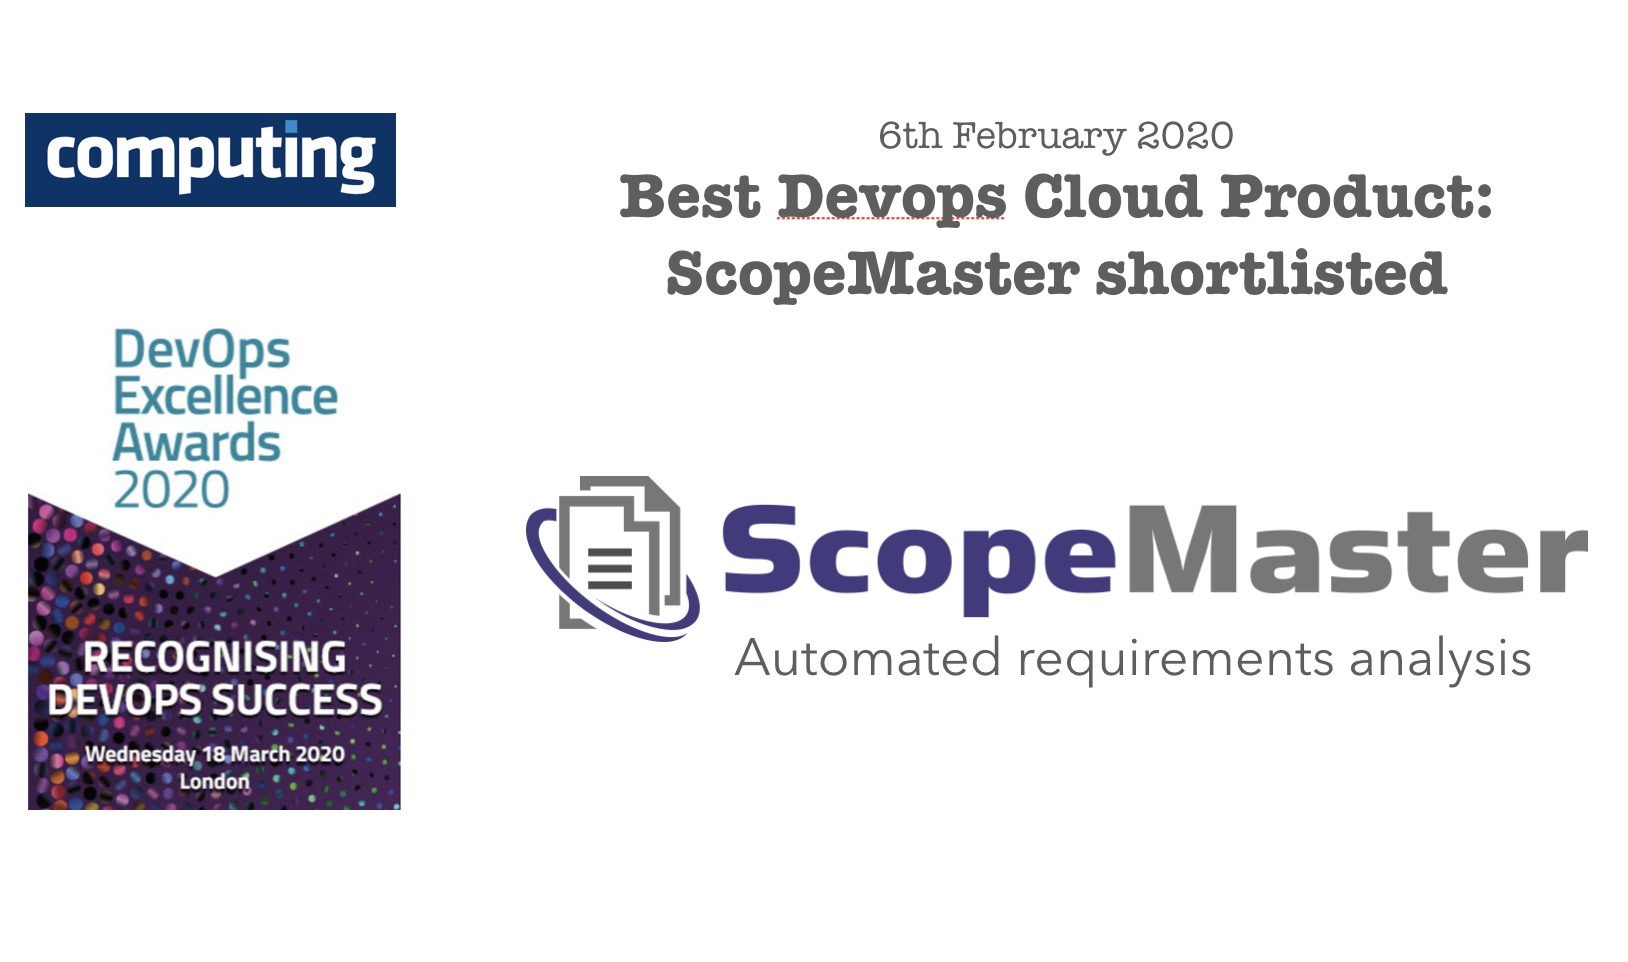 ScopeMaster shortlisted for Computing award for best Devops Cloud product